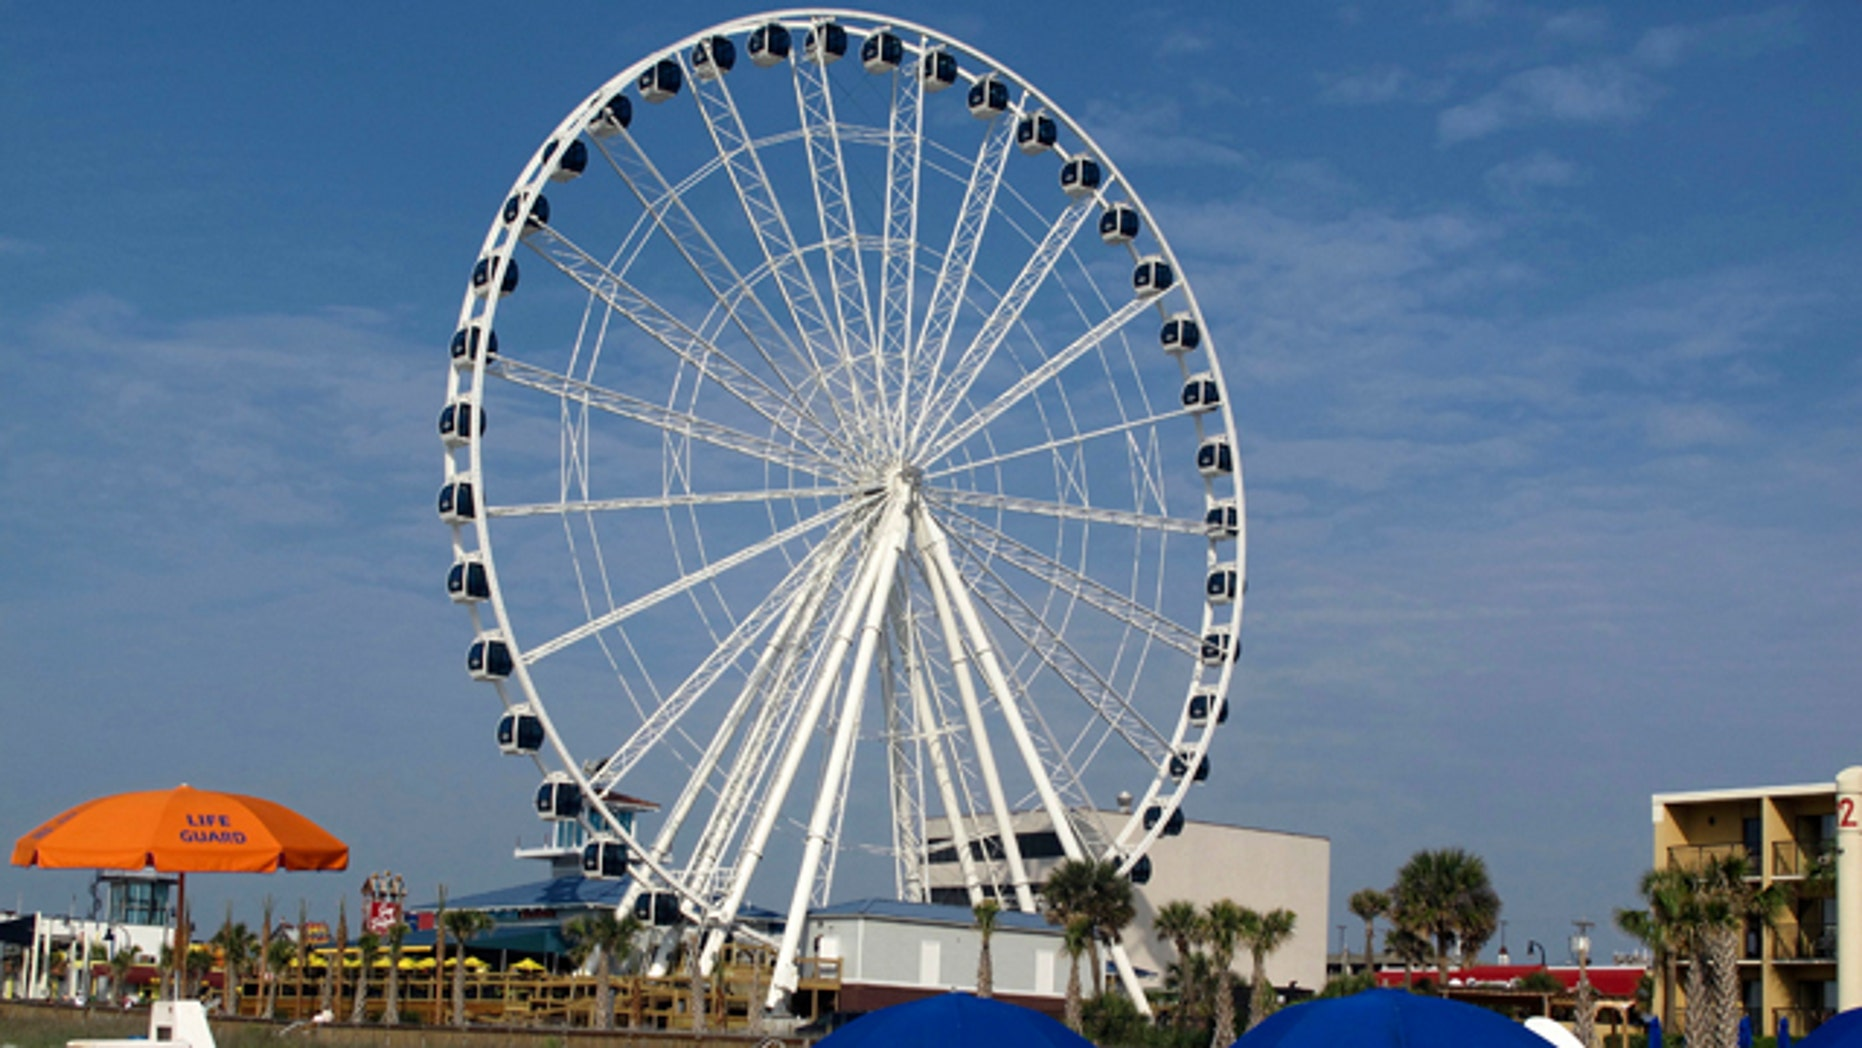 The 200-foot-tall SkyWheel is seen from the shore in Myrtle Beach, S.C., shortly before opening on Friday, May 20, 2011. The SkyWheel, the tallest Ferris wheel in the eastern United States with a million LED lights and 42 air-conditioned gondolas, started spinning Friday in this beach resort on the South Carolina coast.     (AP Photo/Bruce Smith)